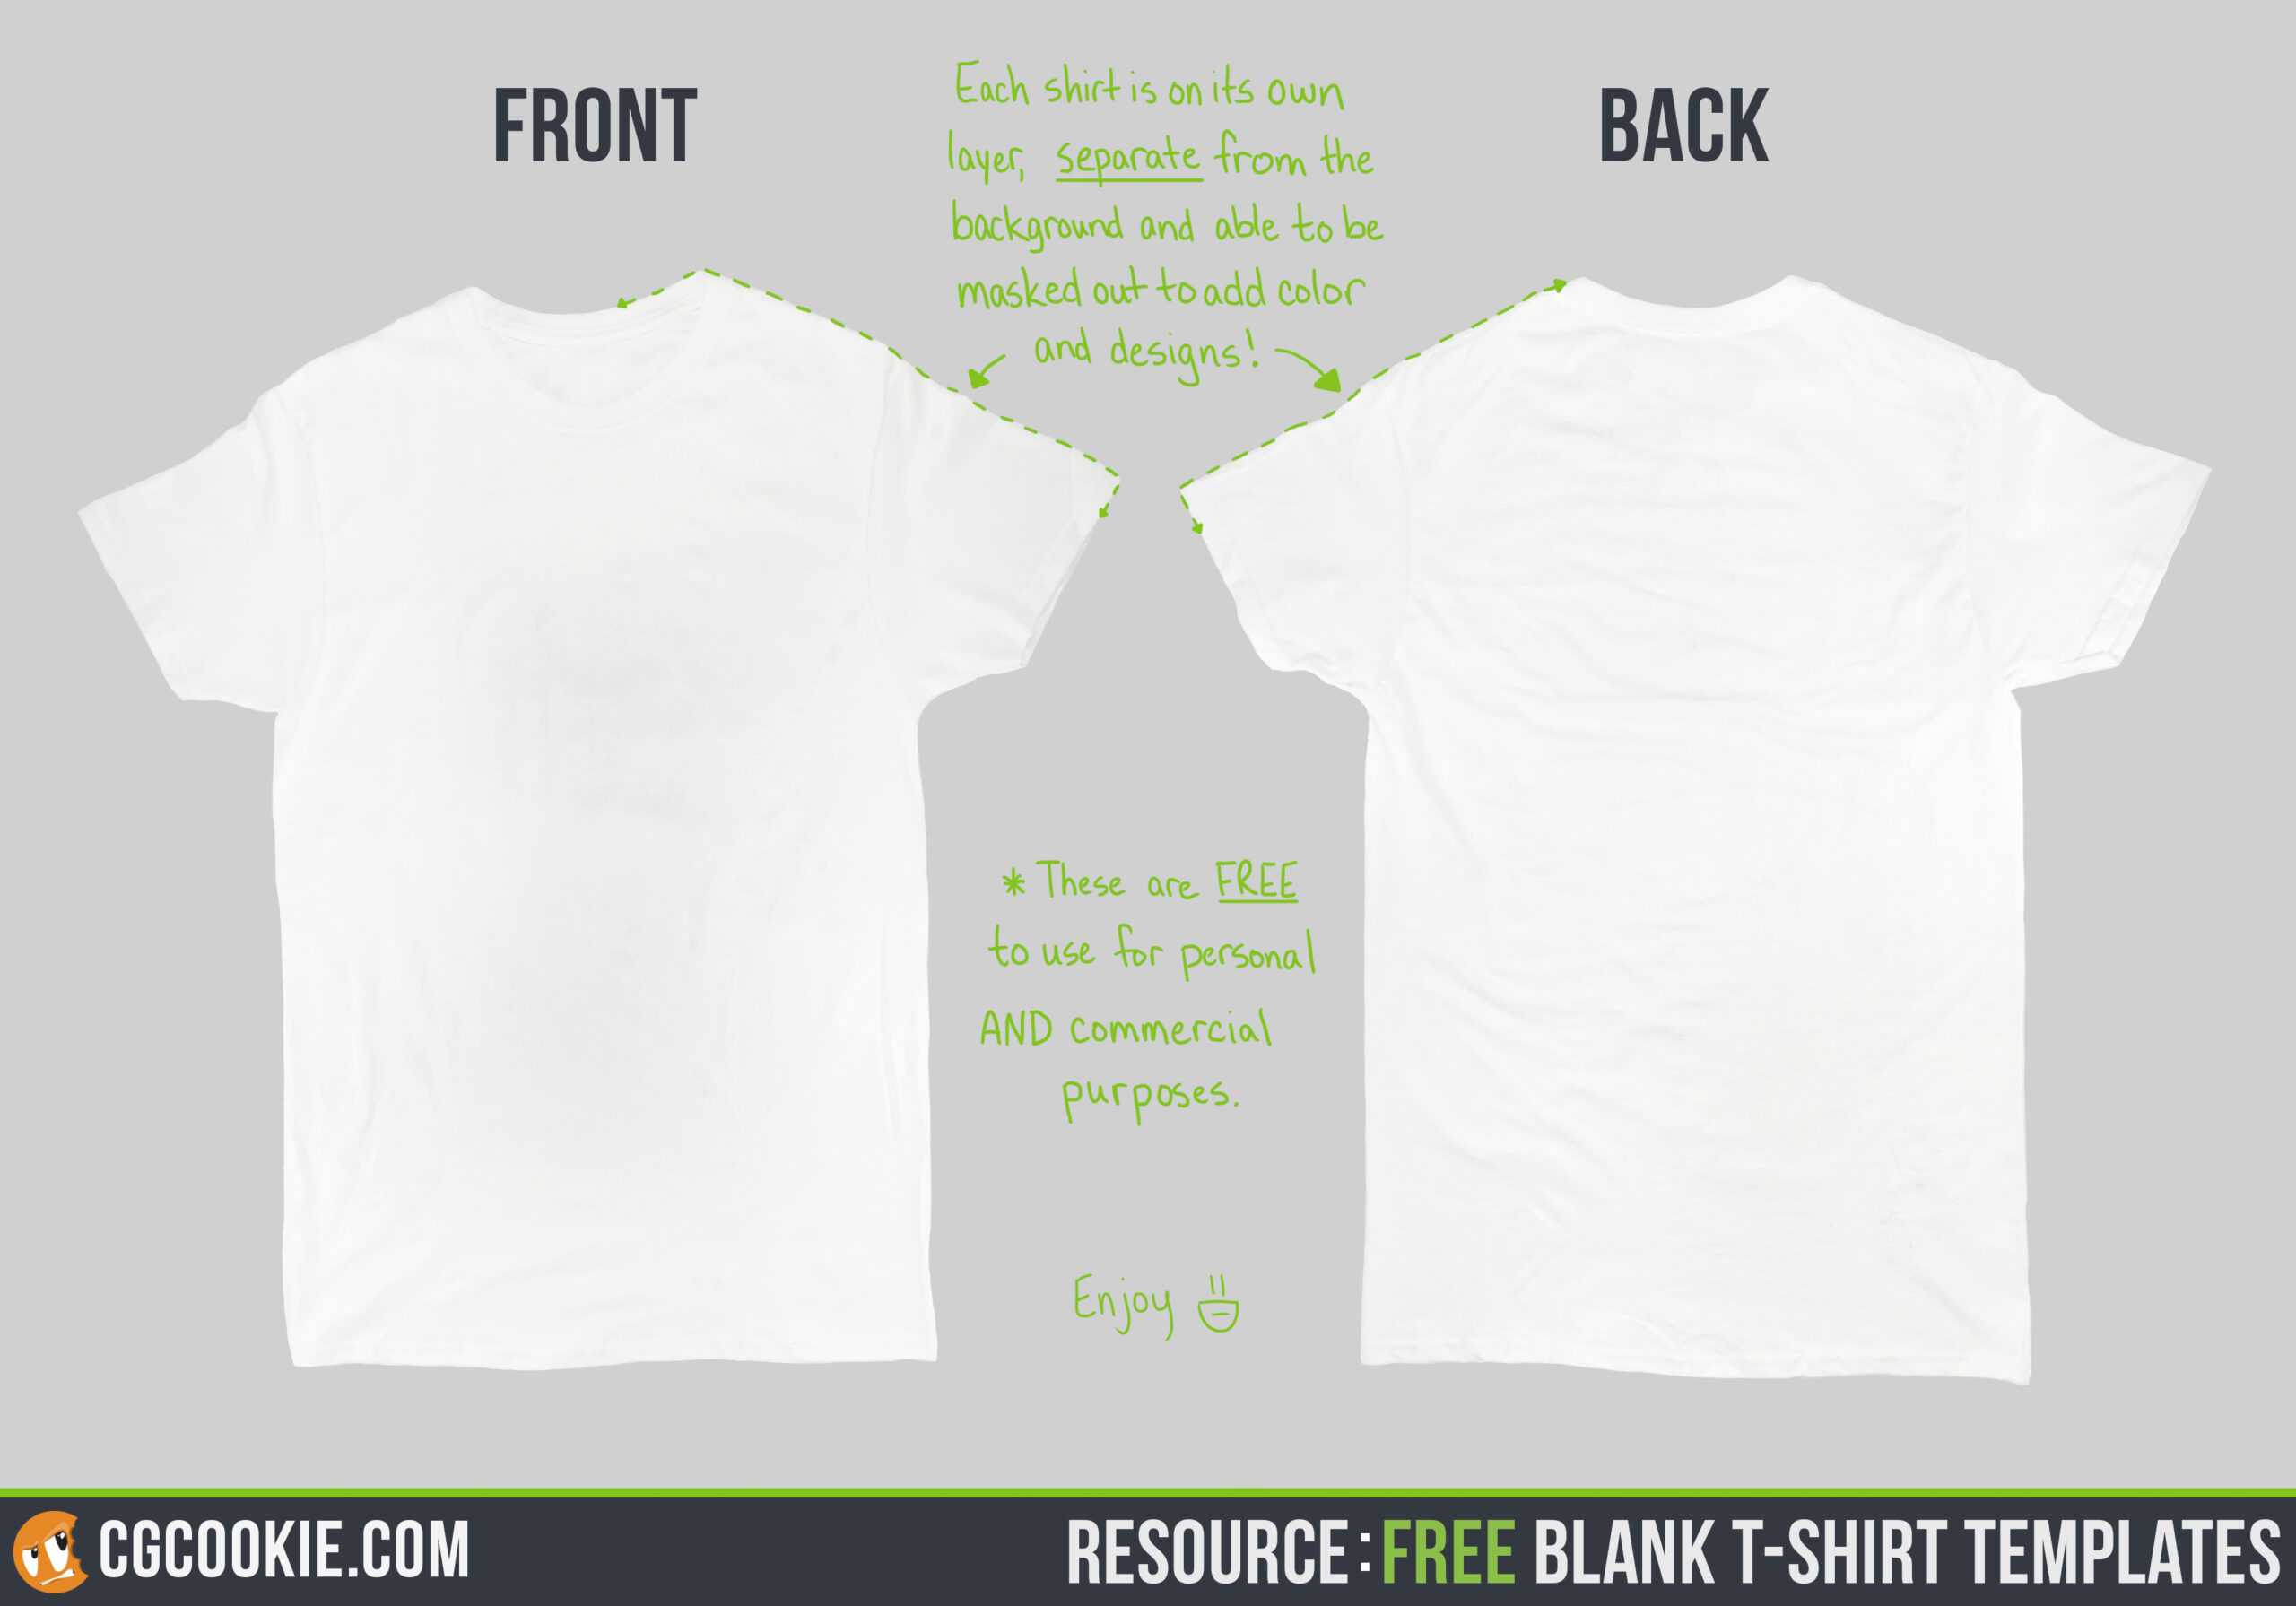 Blank T-Shirt - Cg Cookie intended for Blank T Shirt Design Template Psd